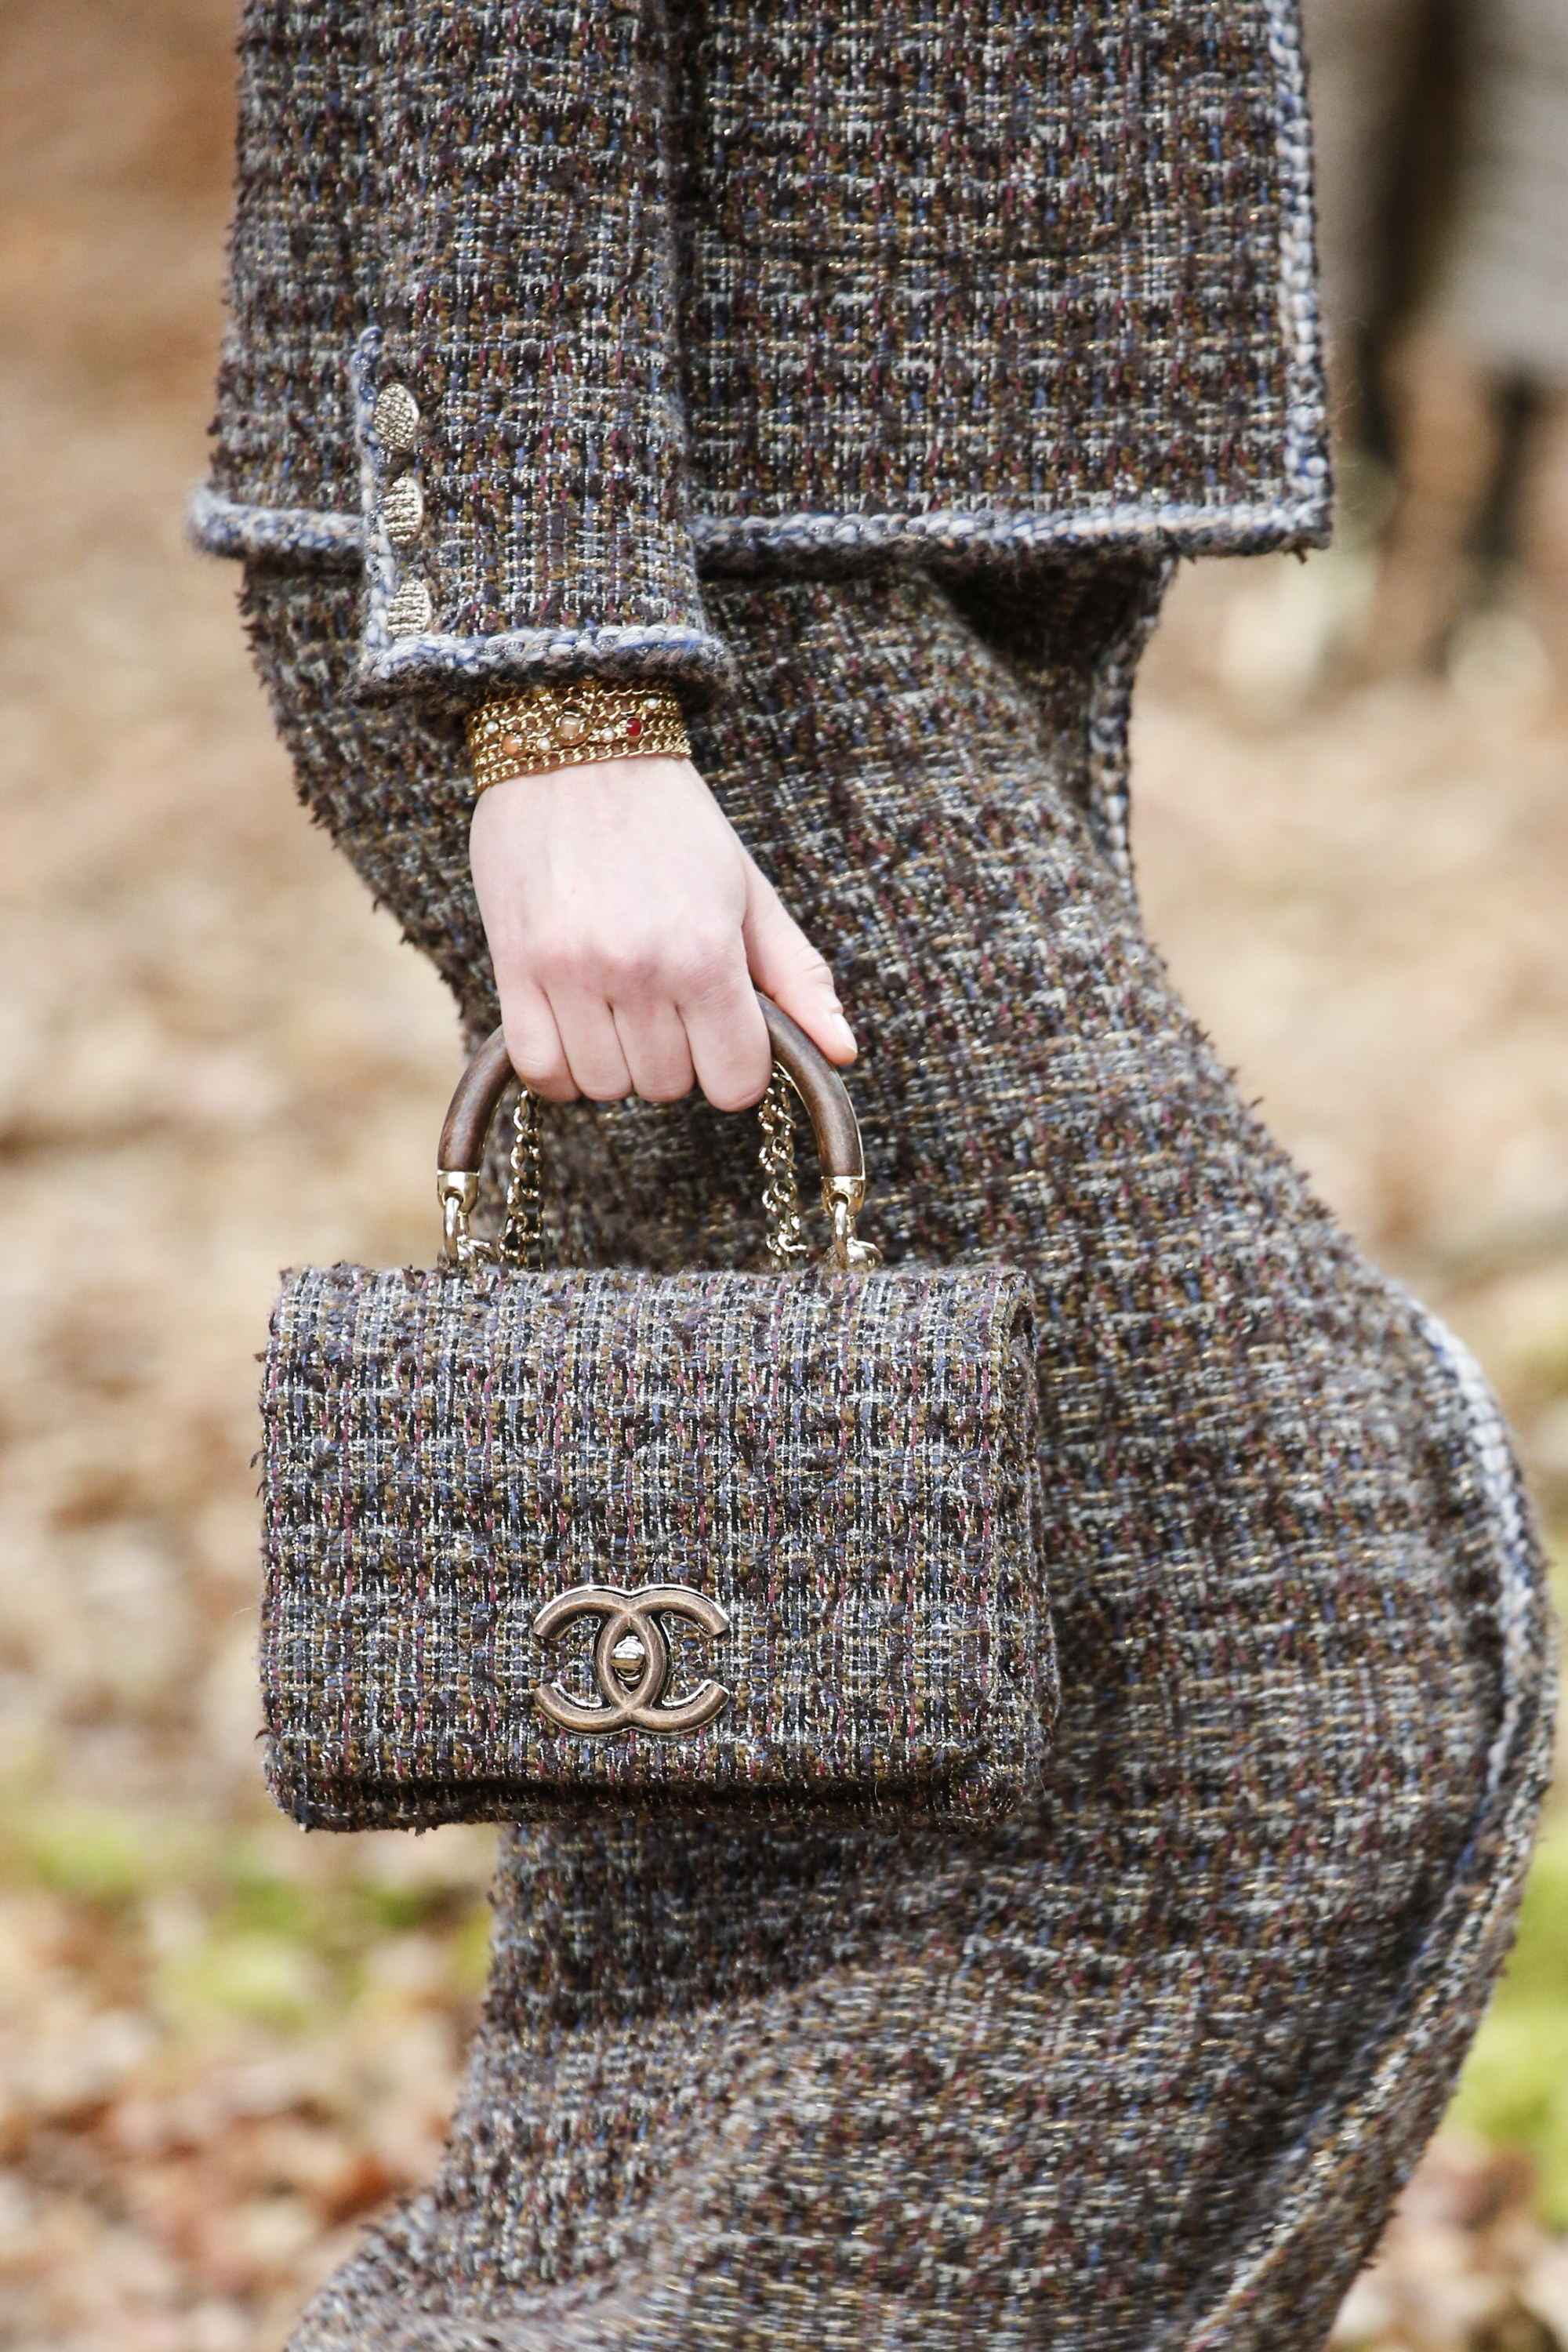 fc5b1c237d2667 Chanel Tweed Bag 2018 | Stanford Center for Opportunity Policy in ...